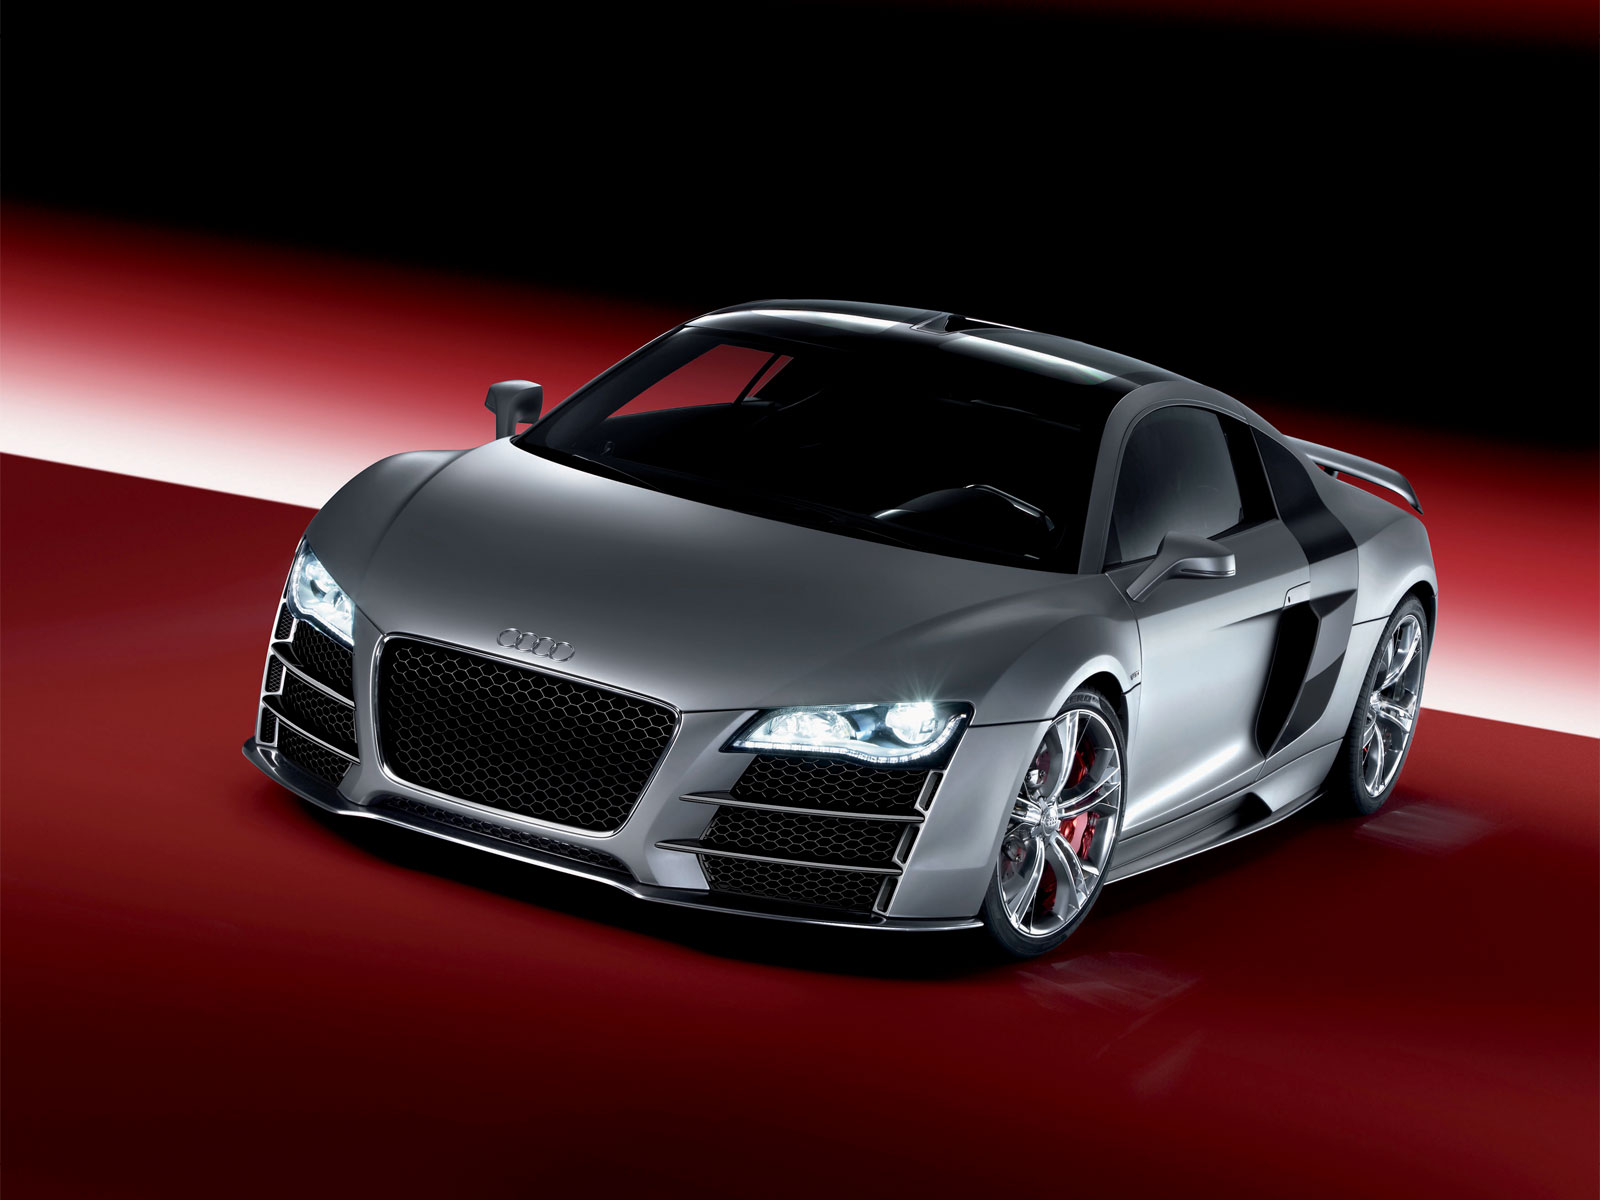 Hd Car Wallpapers Audi R8 V12 Wallpaper